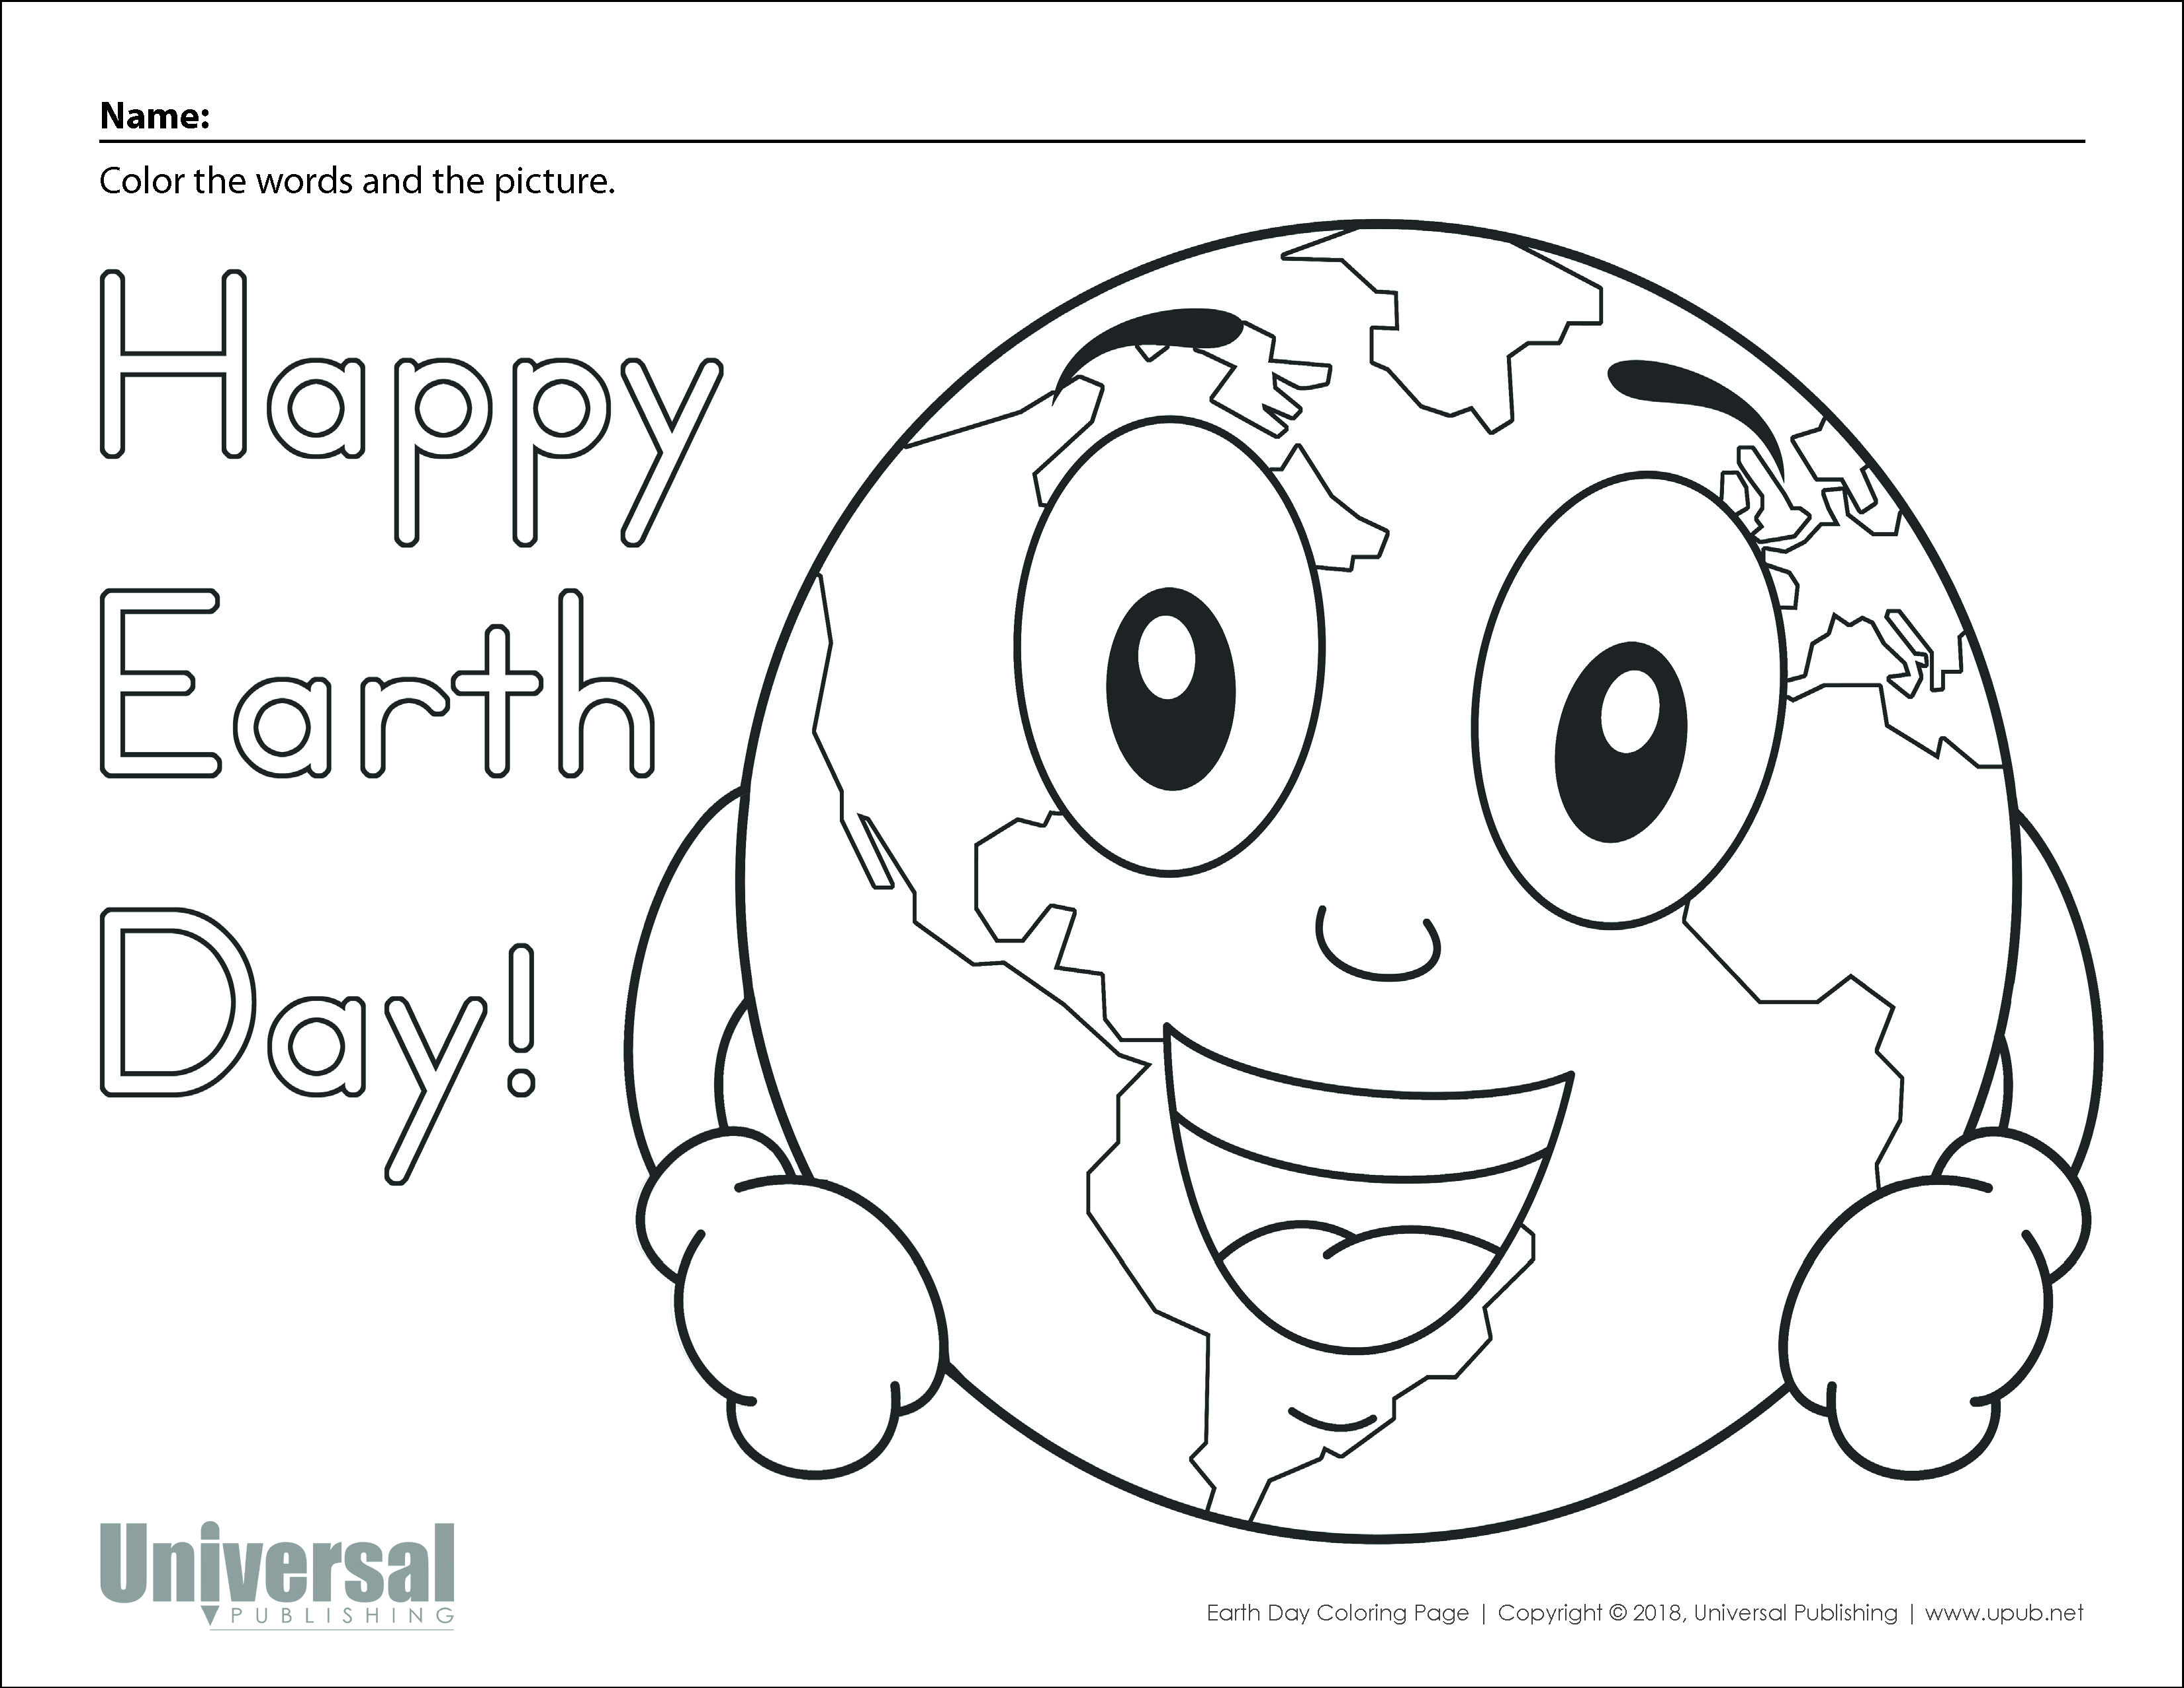 Earth Day Activities | Free Printables - Universal Publishing